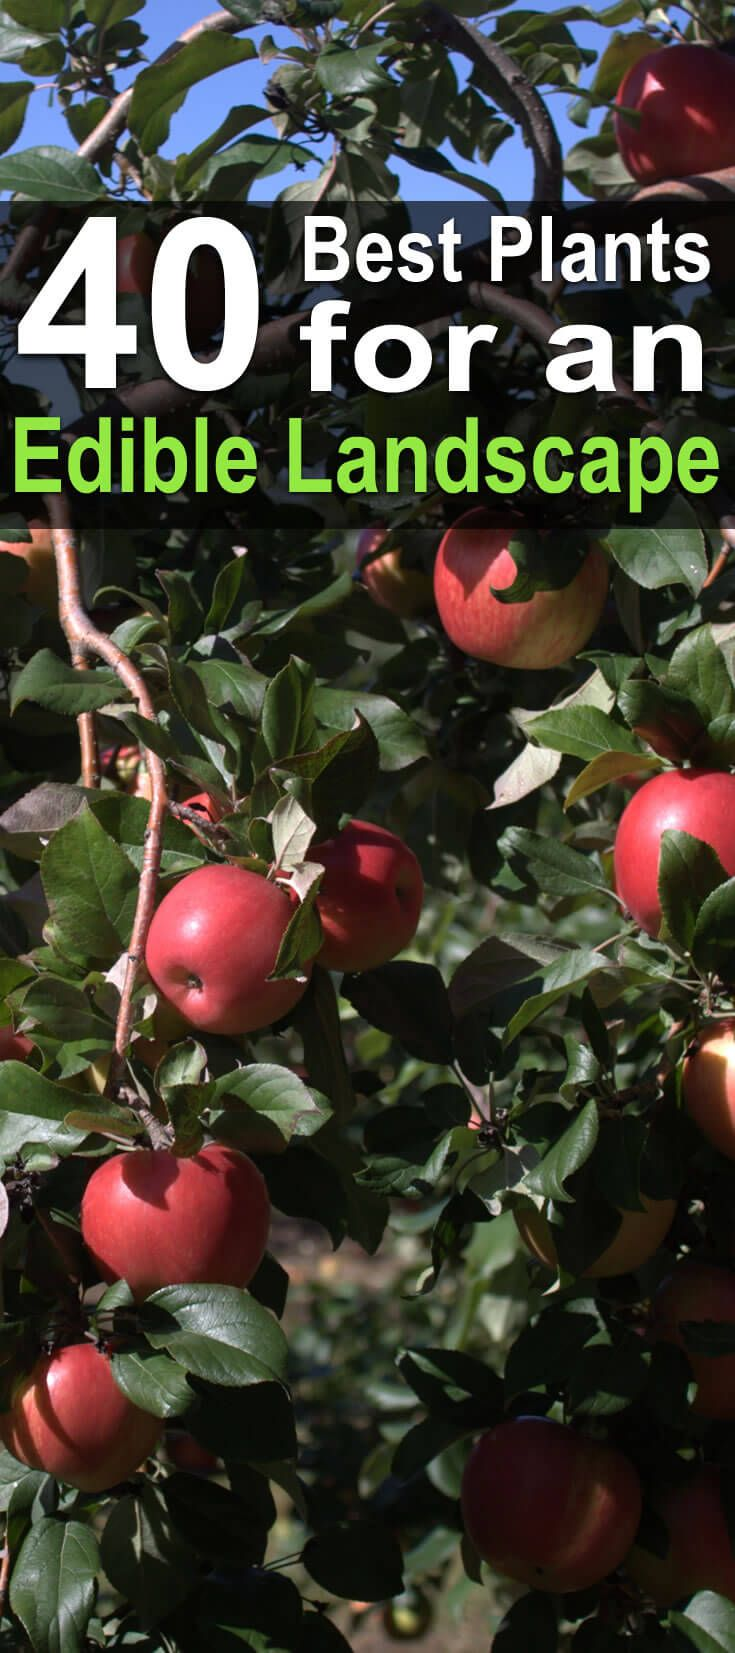 40 best plants for an edible landscape landscaping plants and